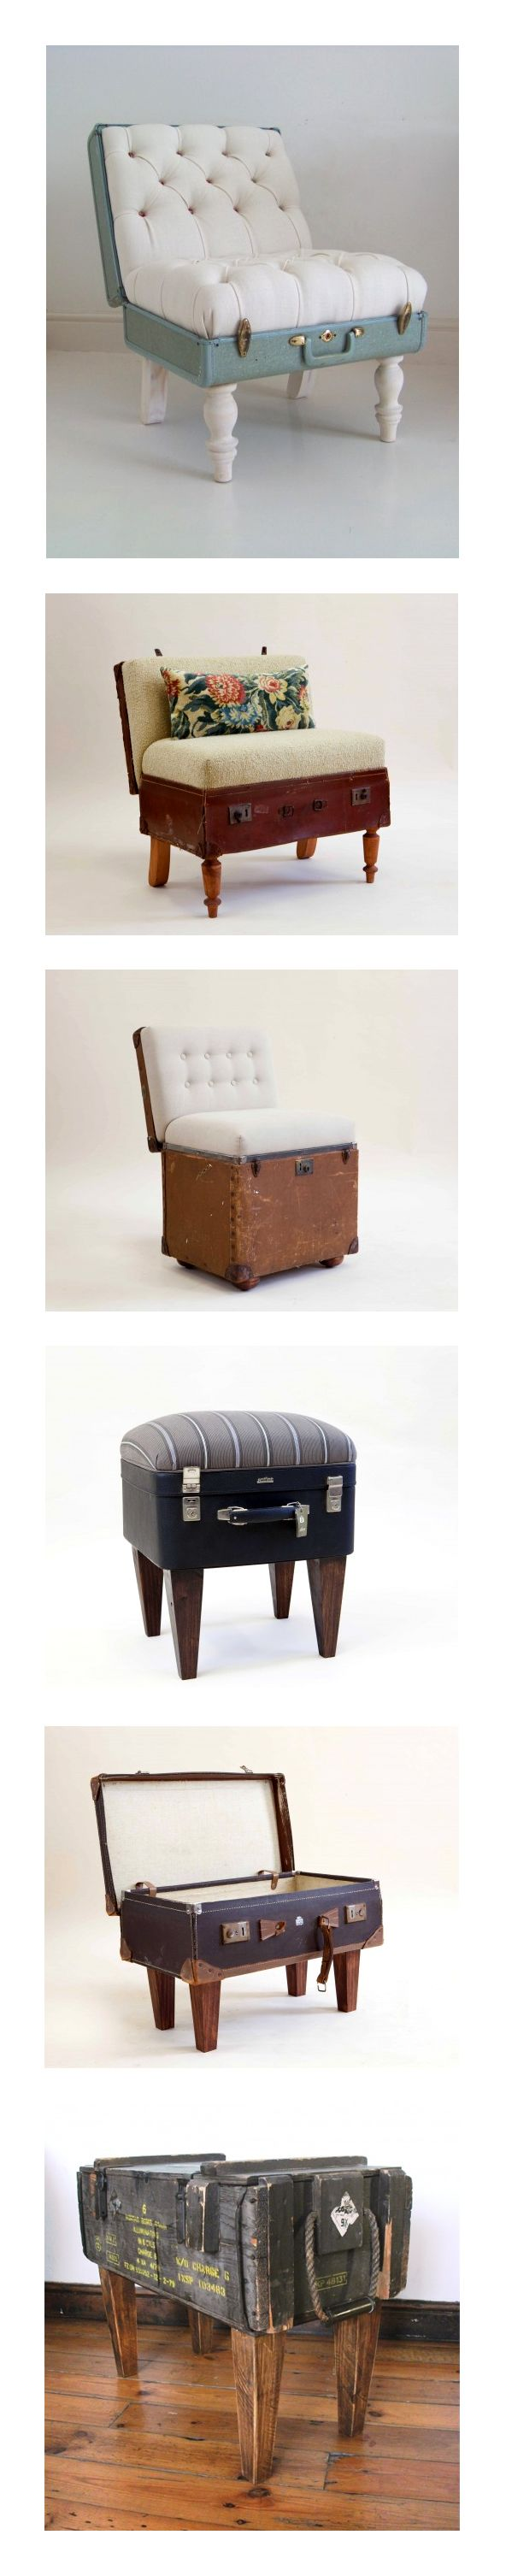 take and old suitcase and a few upholstery skills and you have yourself a unique chair <3